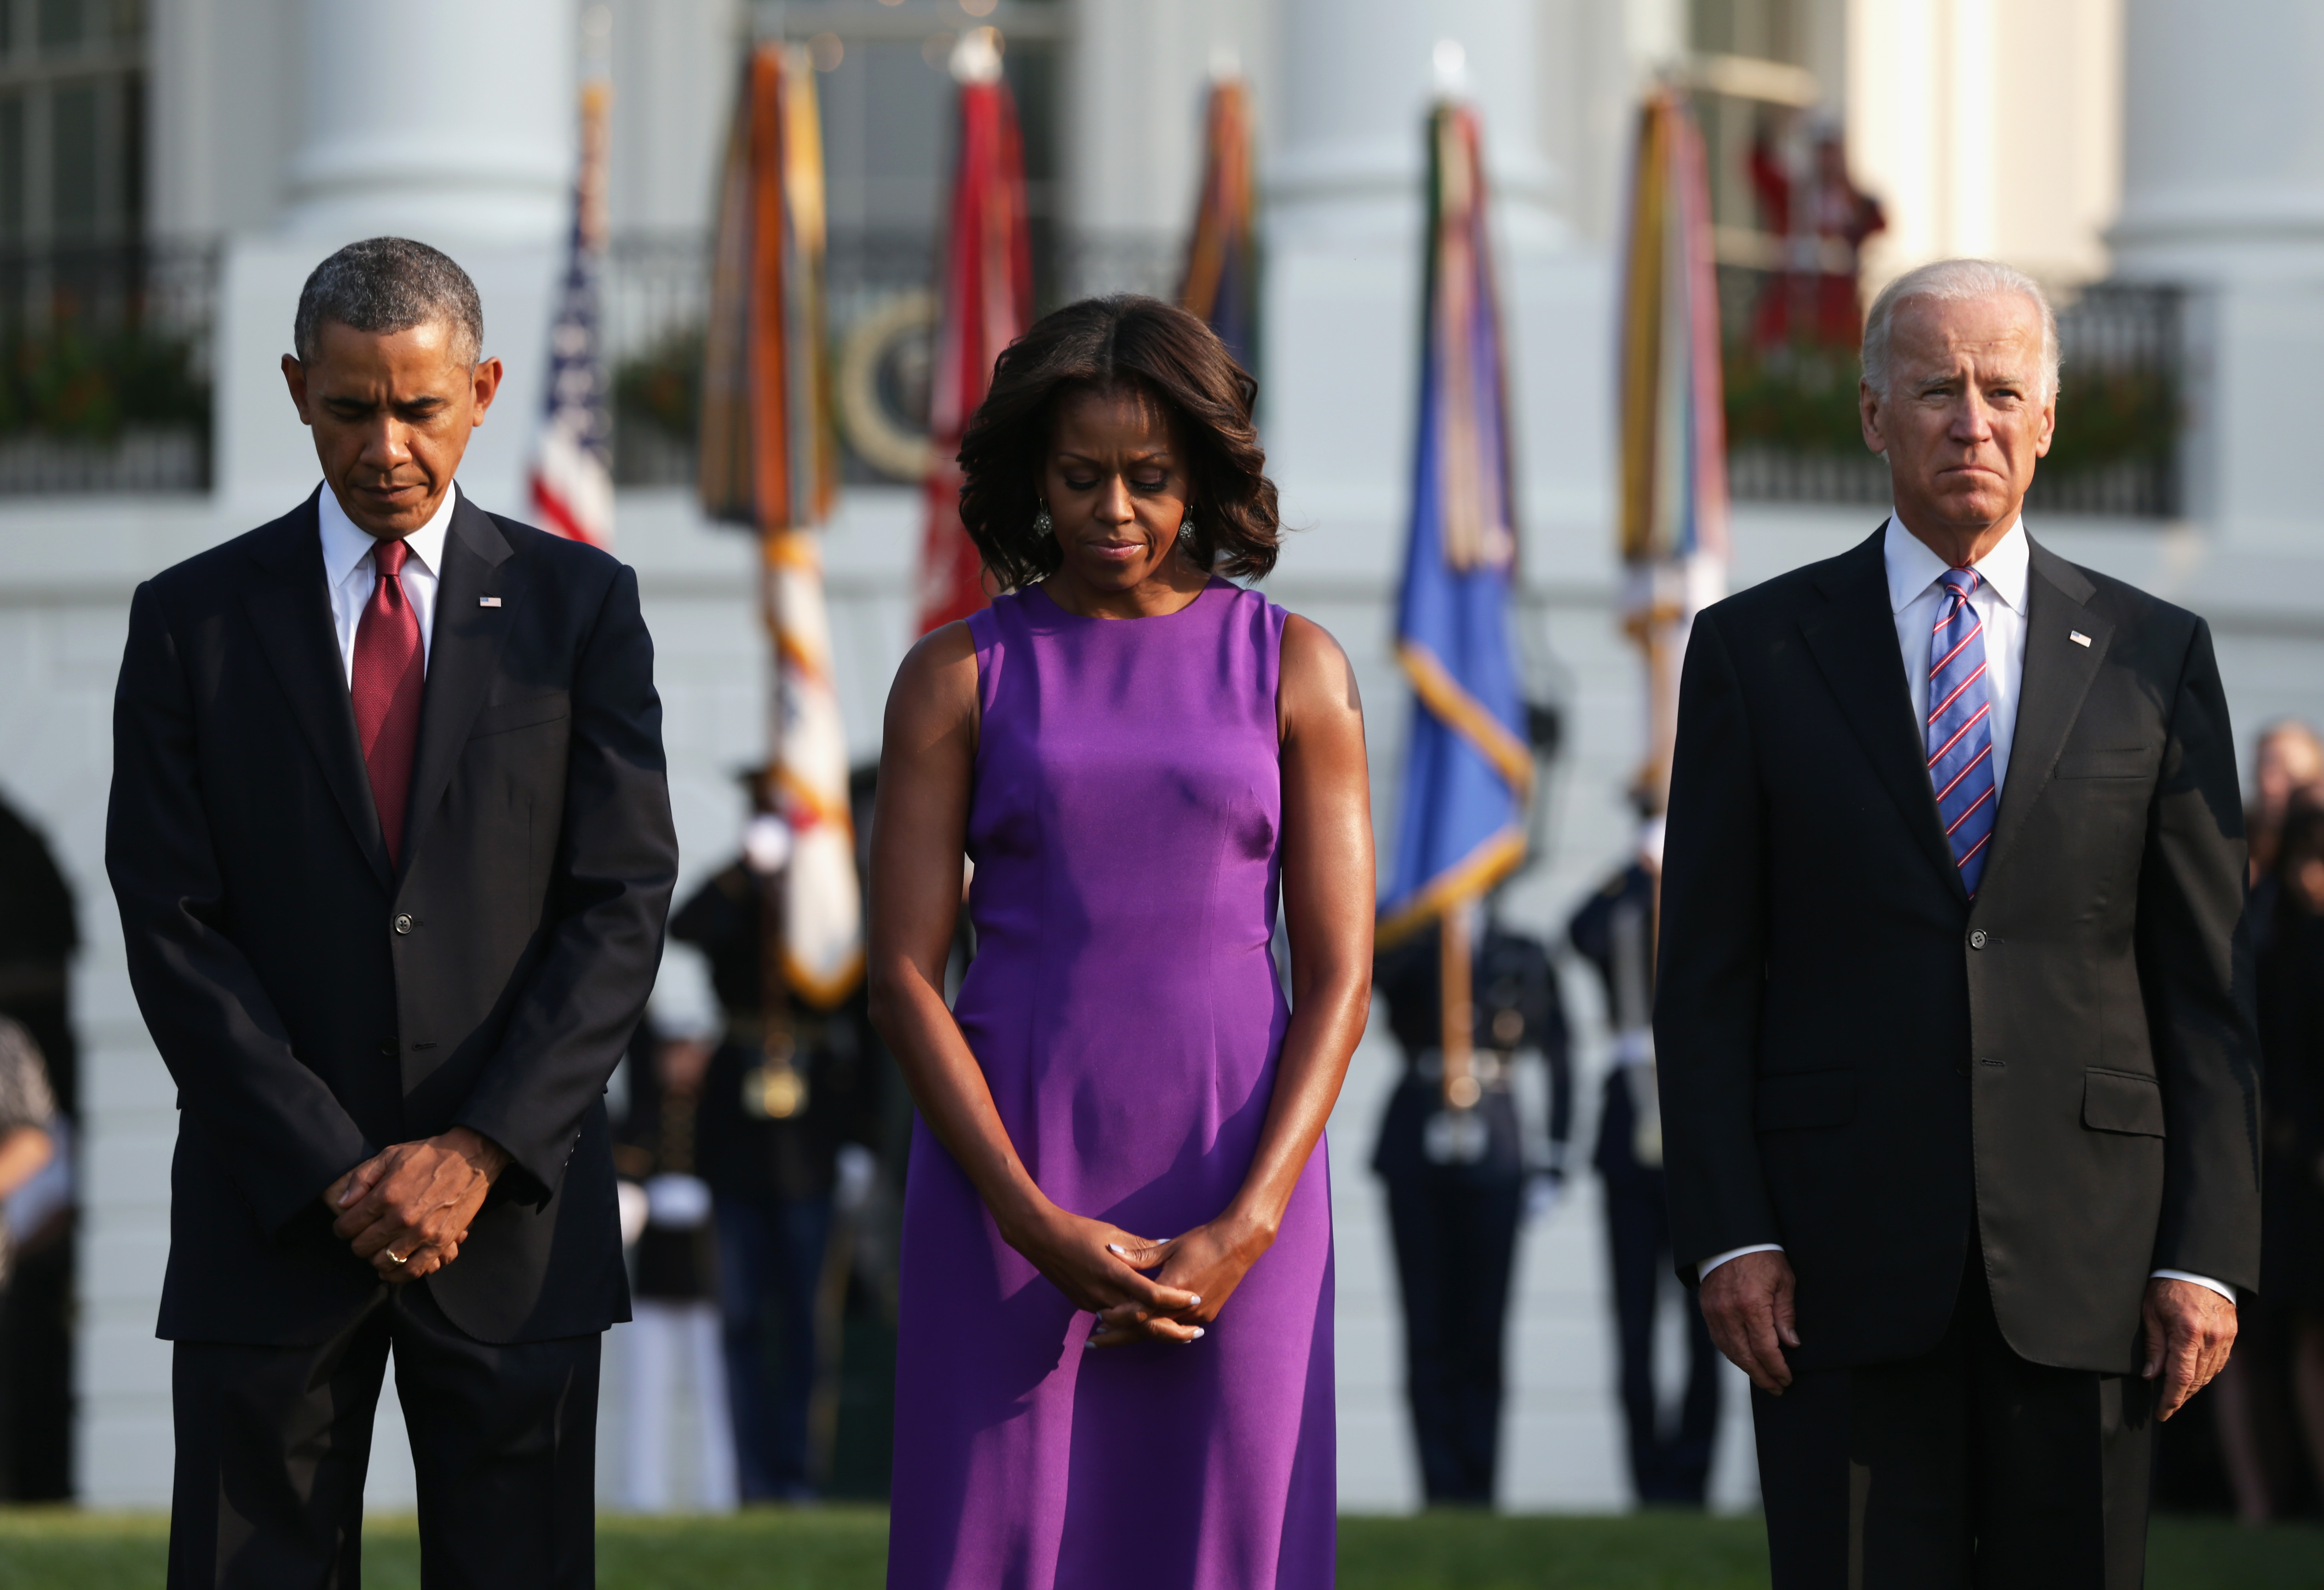 WASHINGTON, DC - SEPTEMBER 11: U.S. President Barack Obama, first lady Michelle Obama and Vice President Joseph Biden observe a moment of silence to mark the 12th anniversary of the 9/11 attacks September 11, 2013 on the South Lawn of the White House in Washington, DC. The nation is commemorating the anniversary of the 2001 attacks which resulted in the deaths of nearly 3,000 people after two hijacked planes crashed into the World Trade Center, one into the Pentagon in Arlington, Virginia and one crash landed in Shanksville, Pennsylvania. (Photo by Alex Wong/Getty Images)